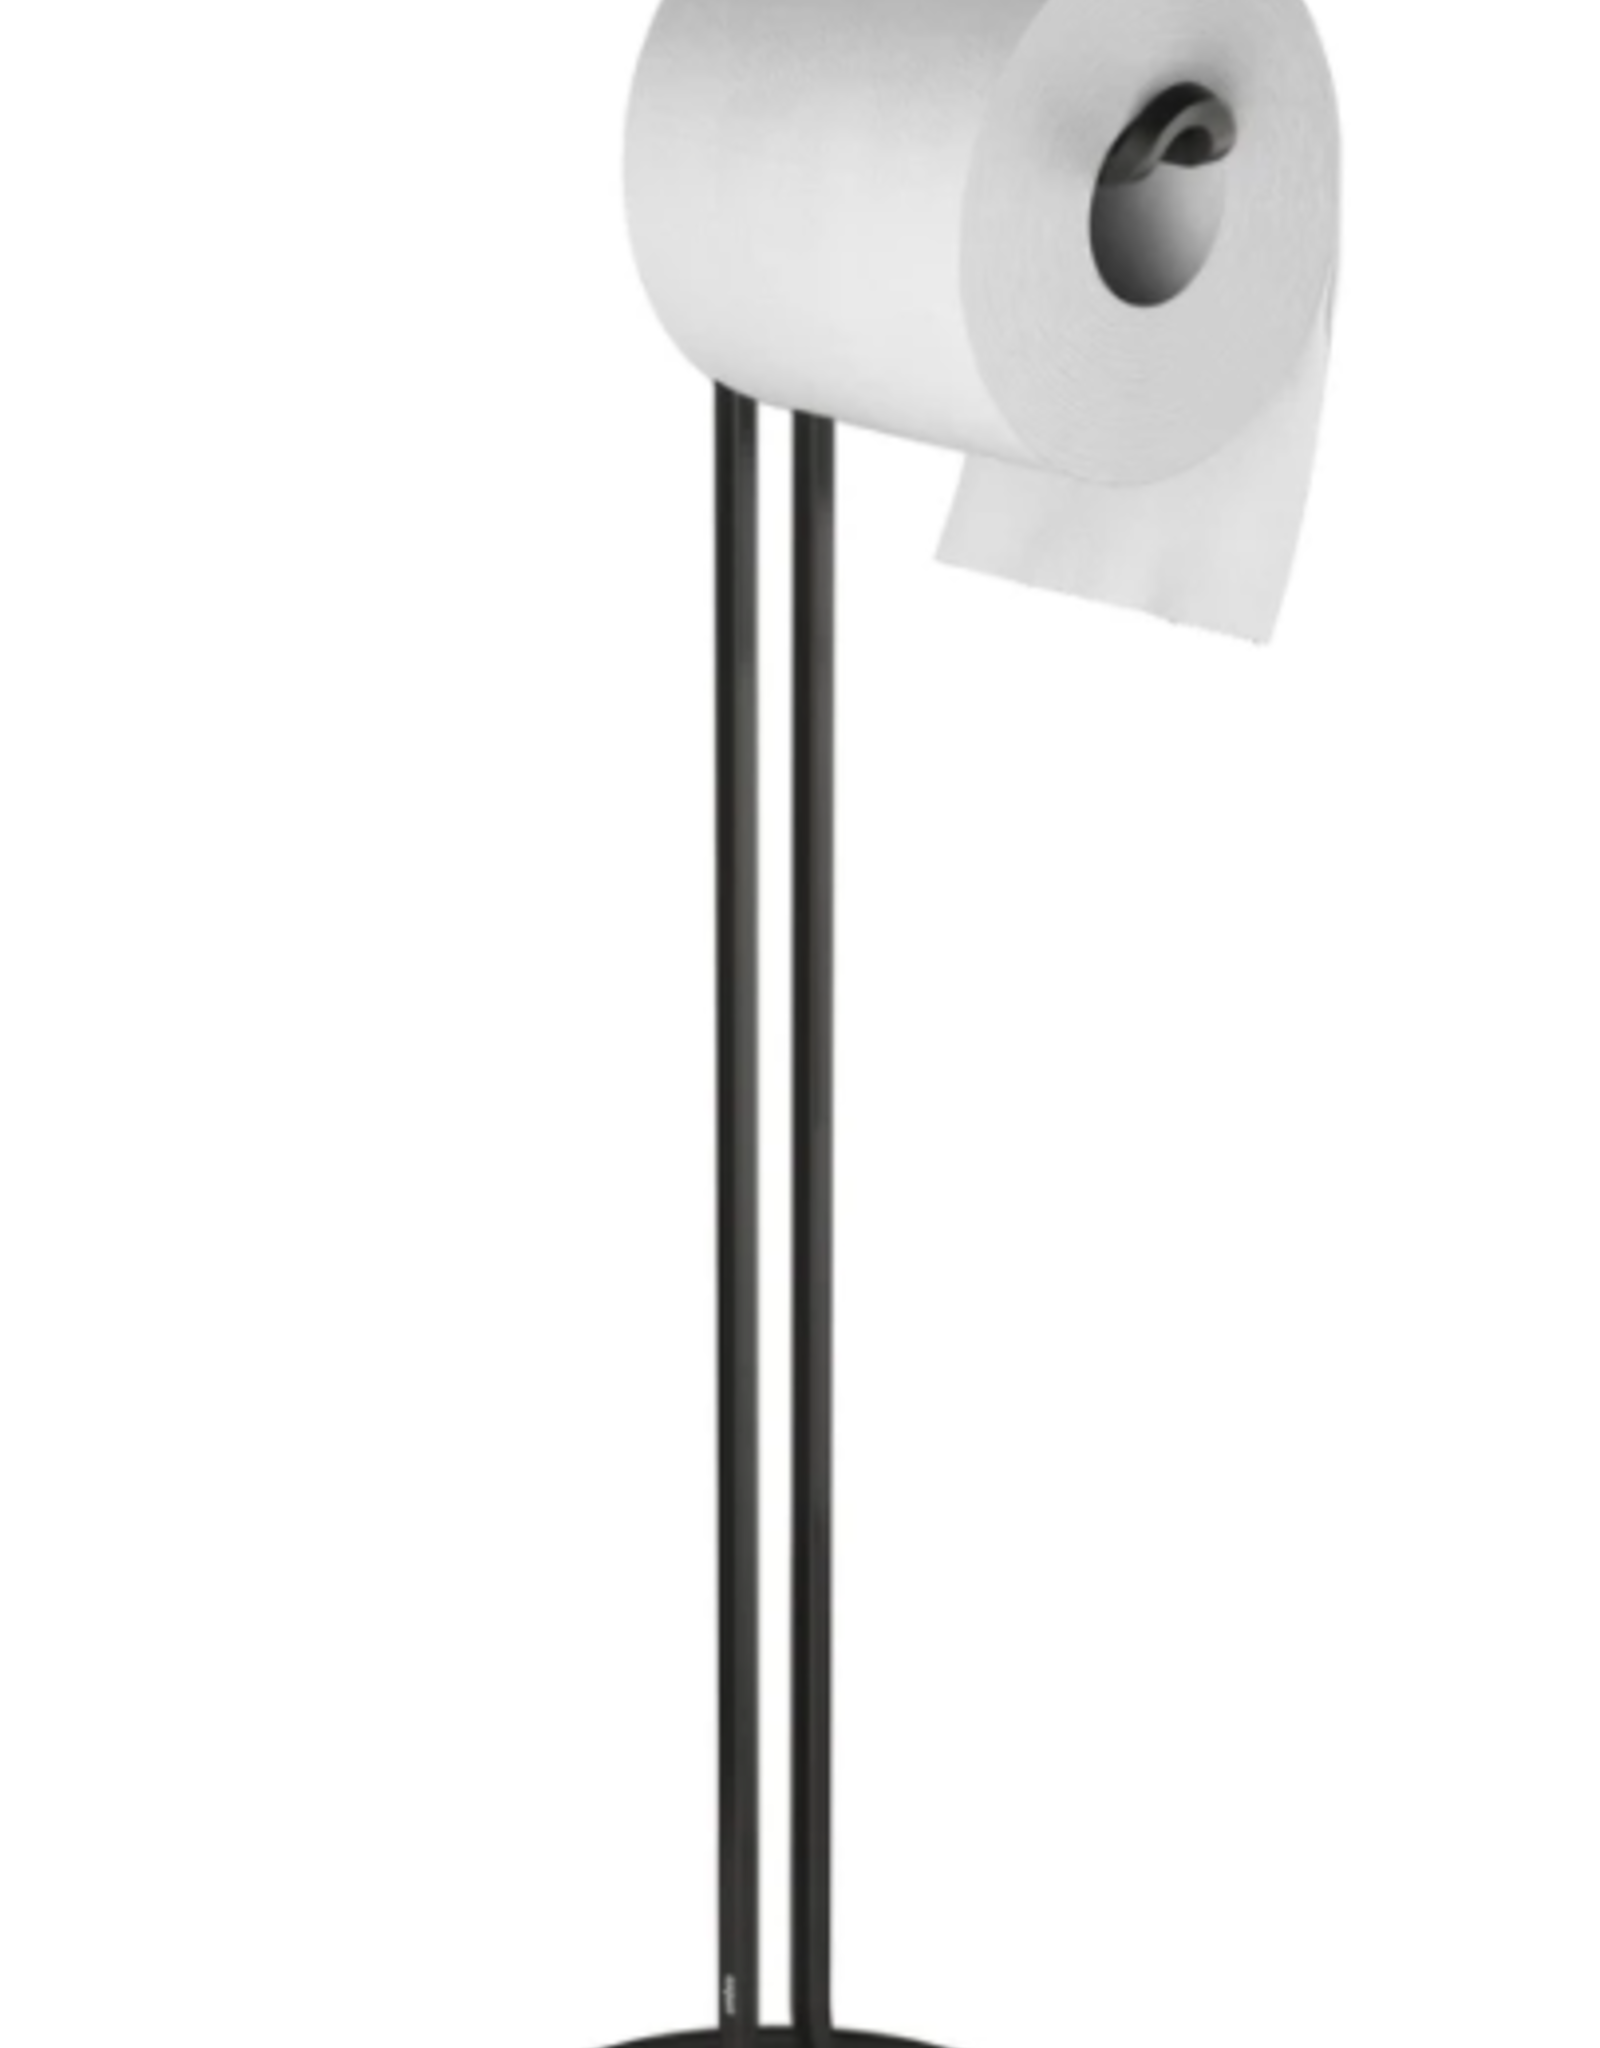 Umbra Umbra Squire Toilet Paper Holder